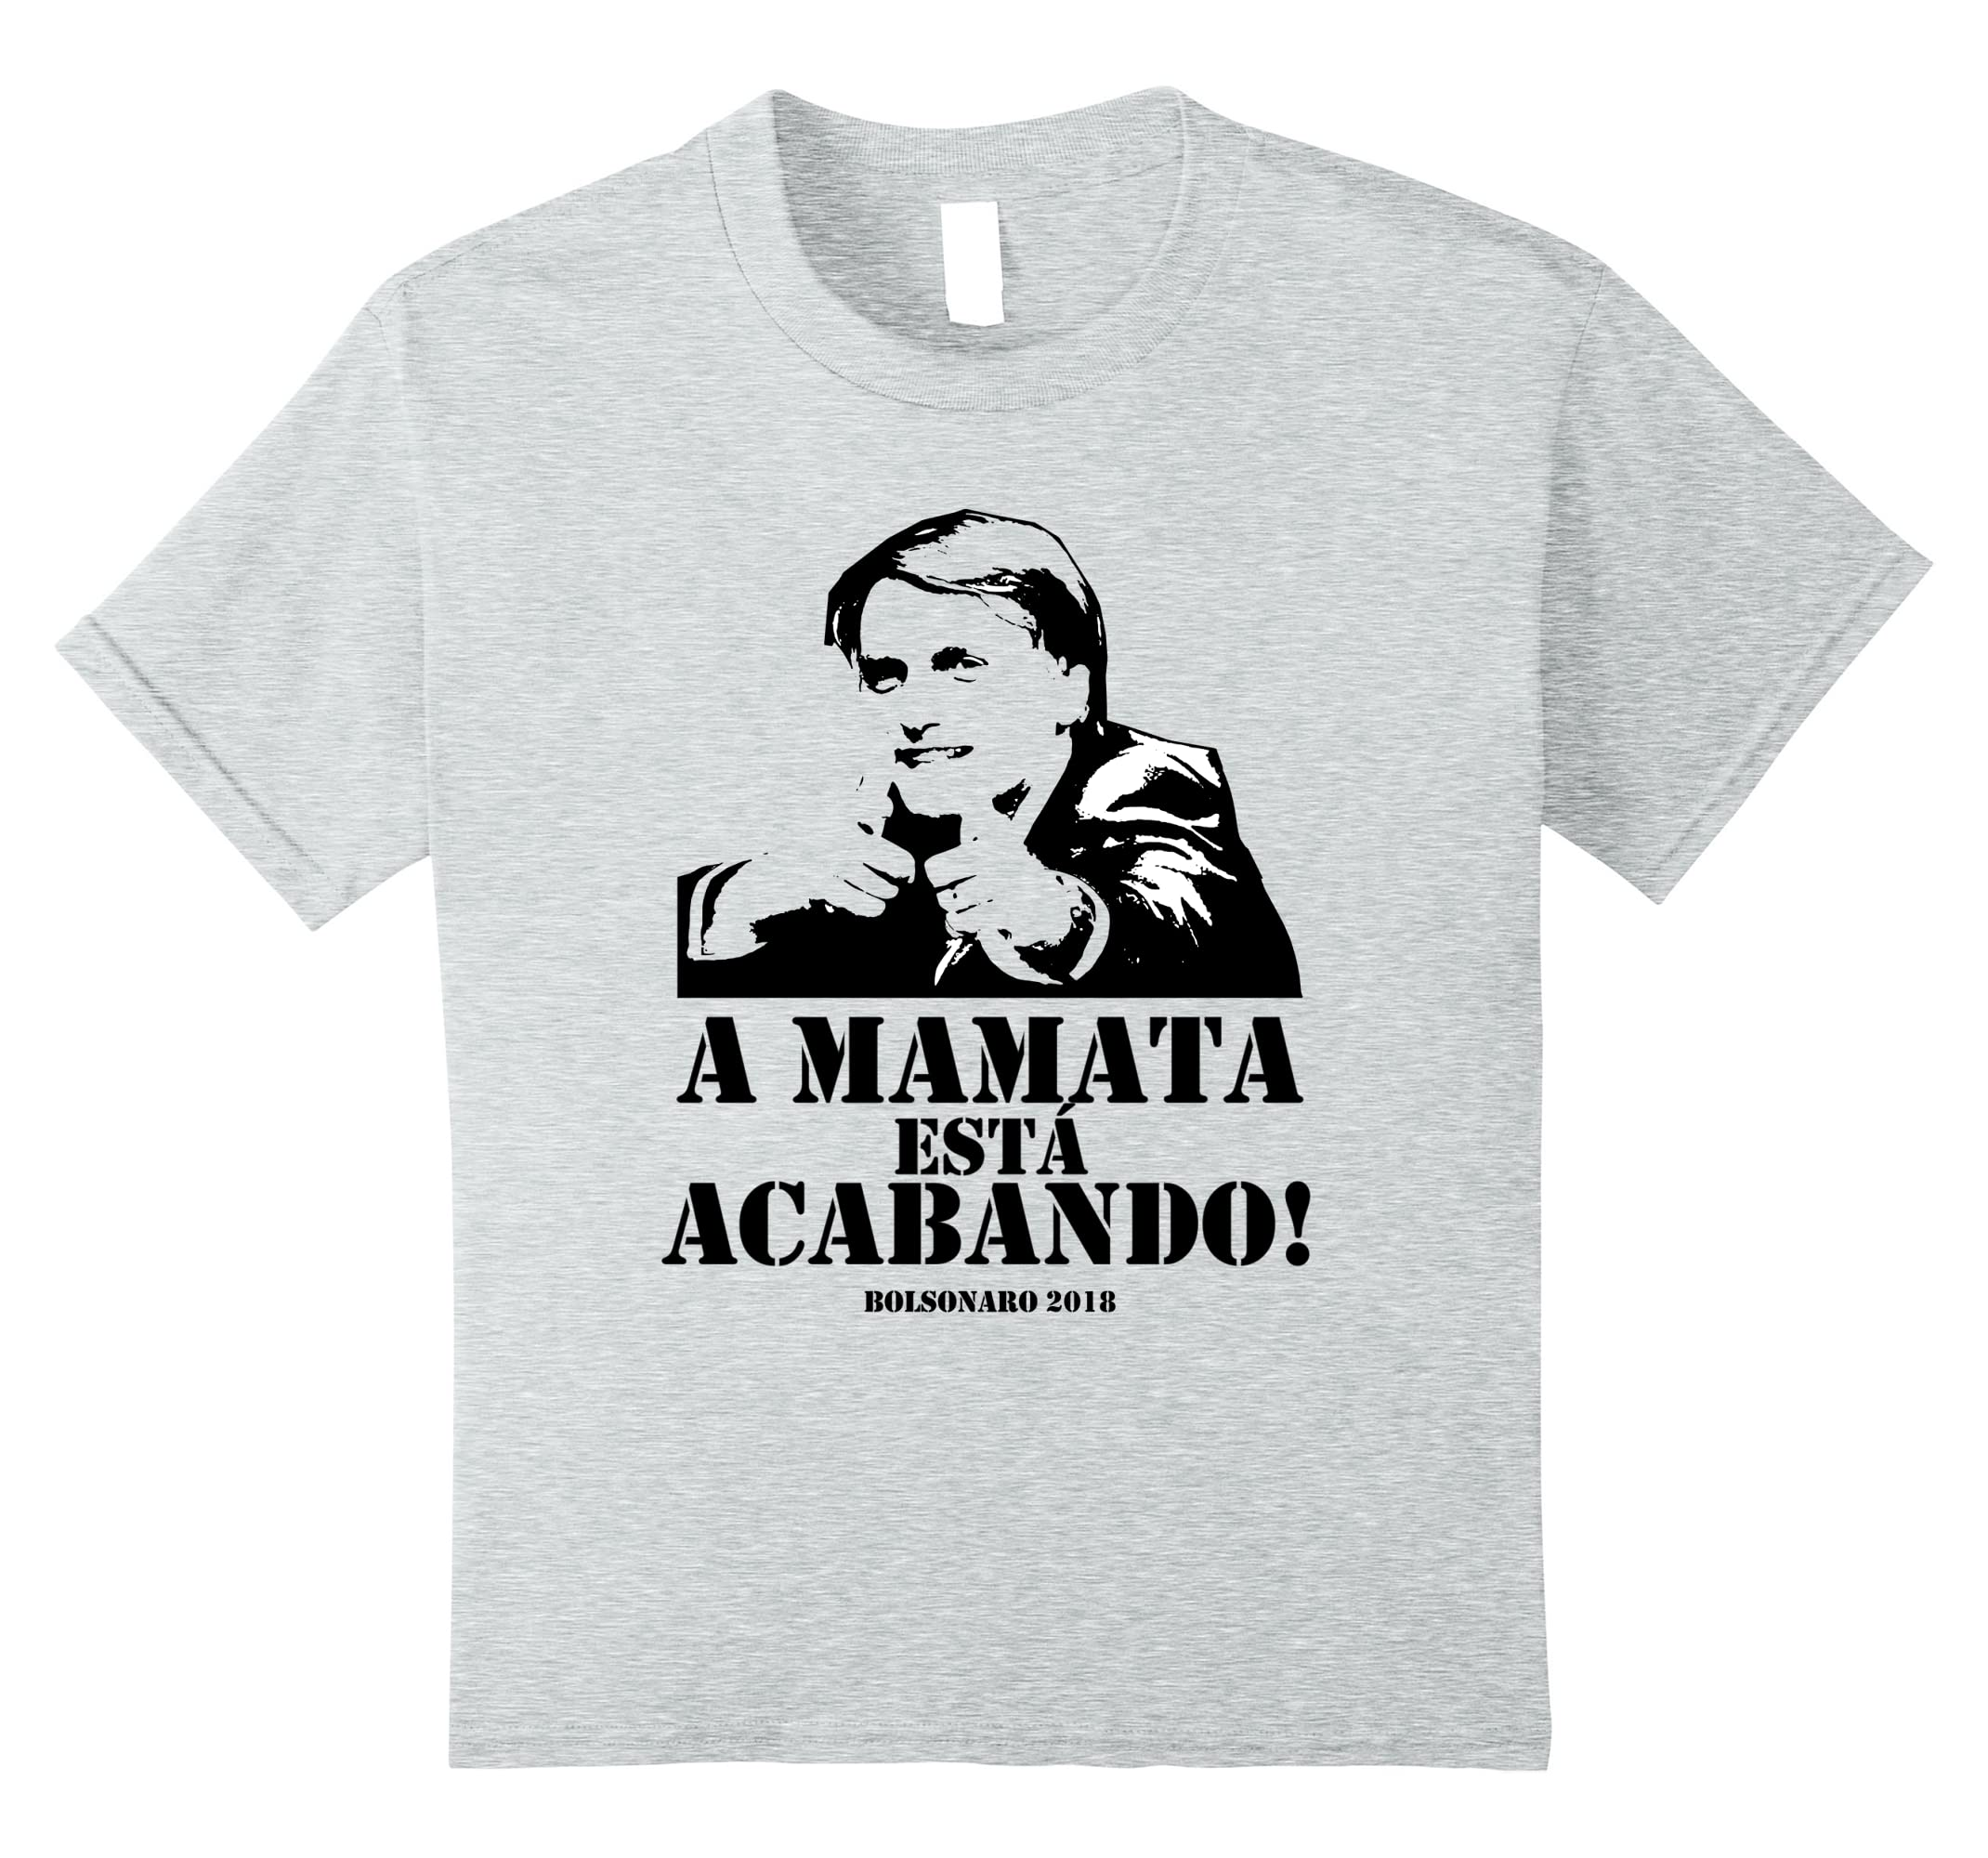 Amazon.com: Camiseta Jair Bolsonaro 2018 Presidente do Brasil t shirt: Clothing